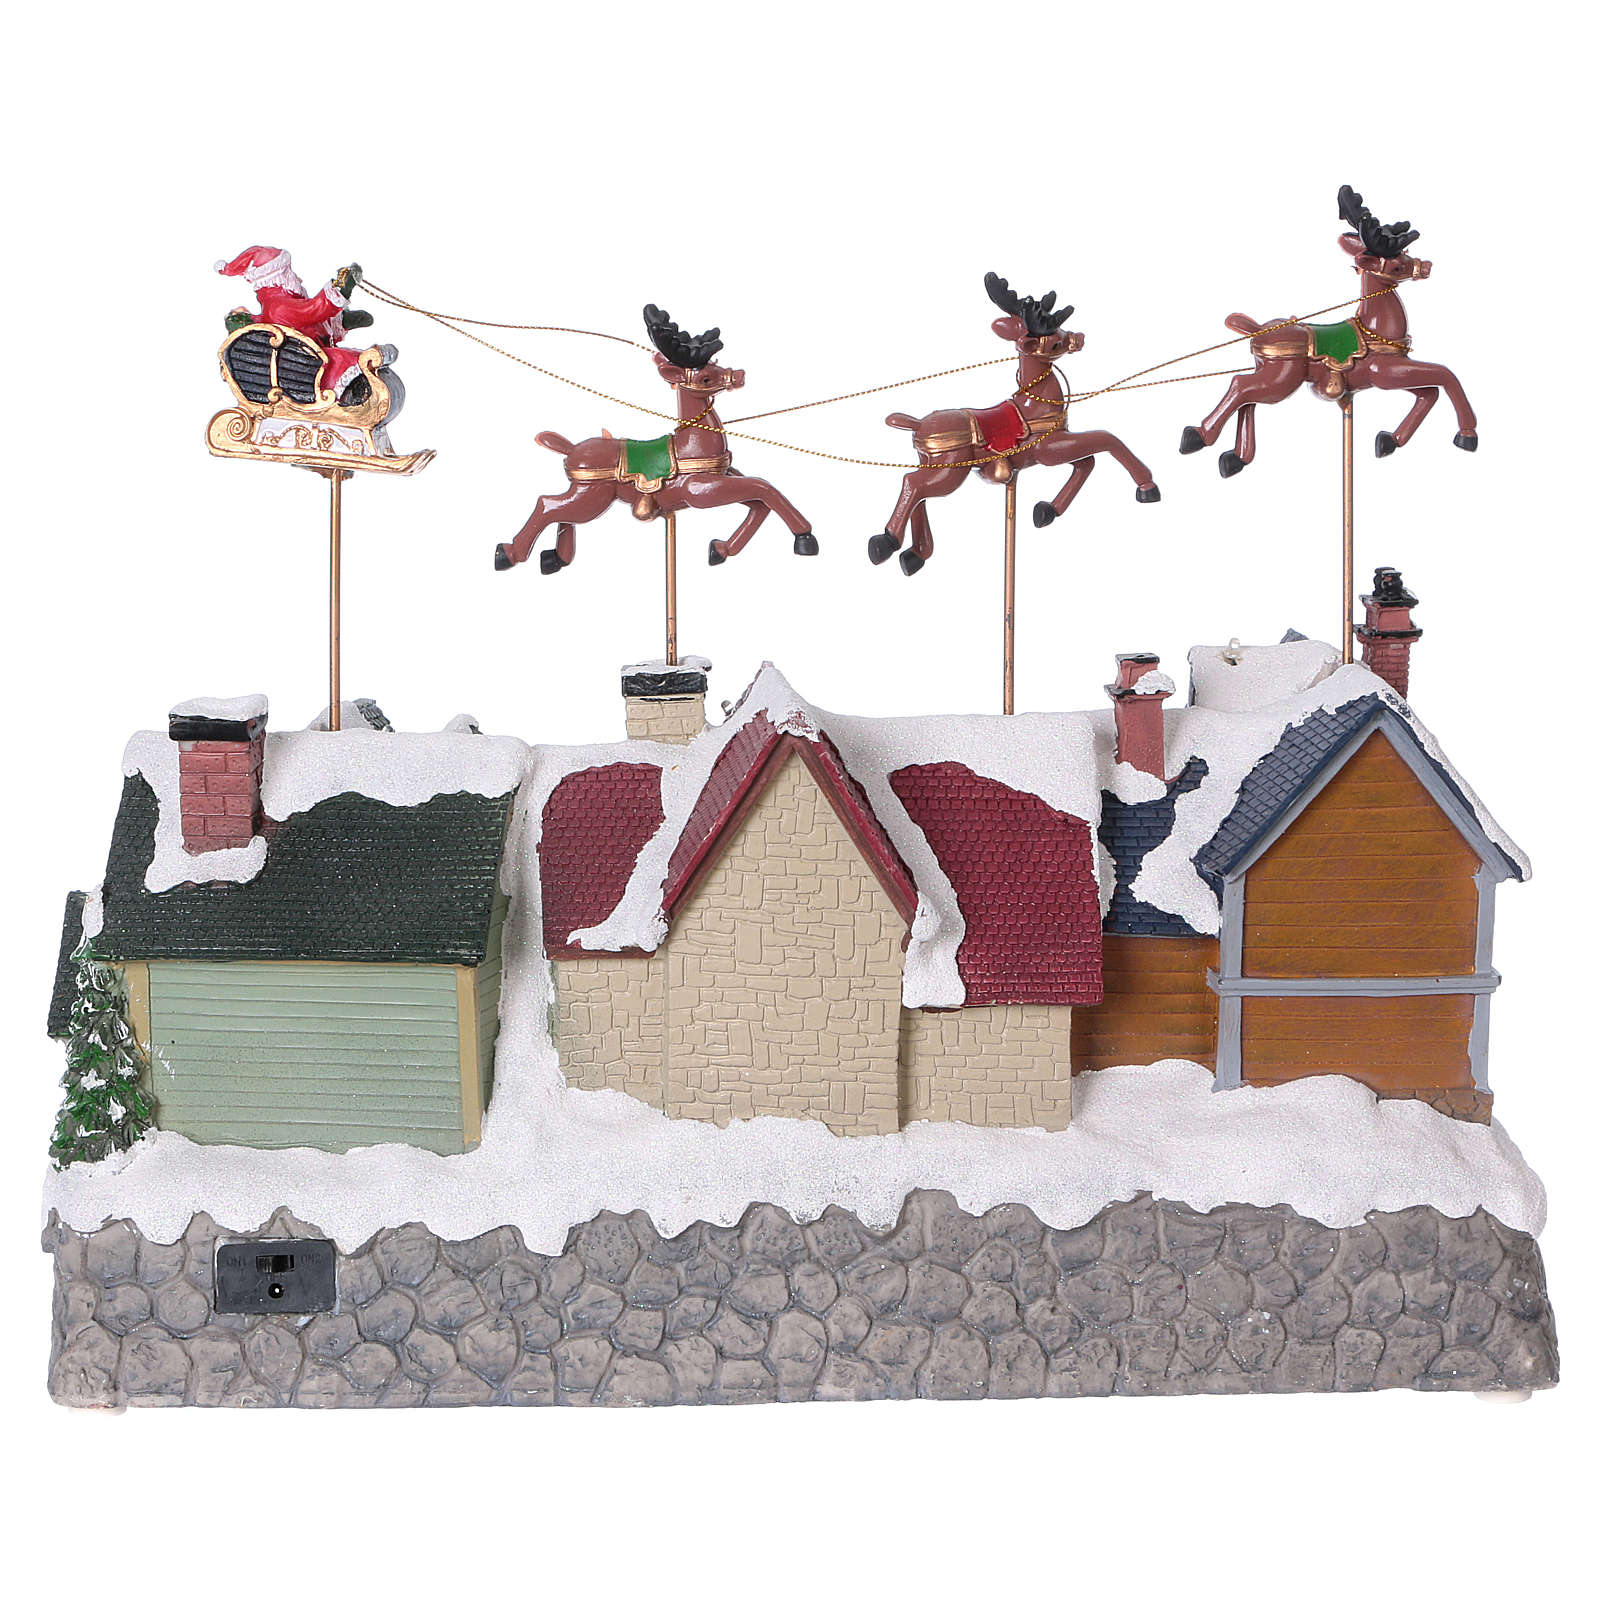 Christmas village with lights and Santa Claus movement 30x35x20 cm 3